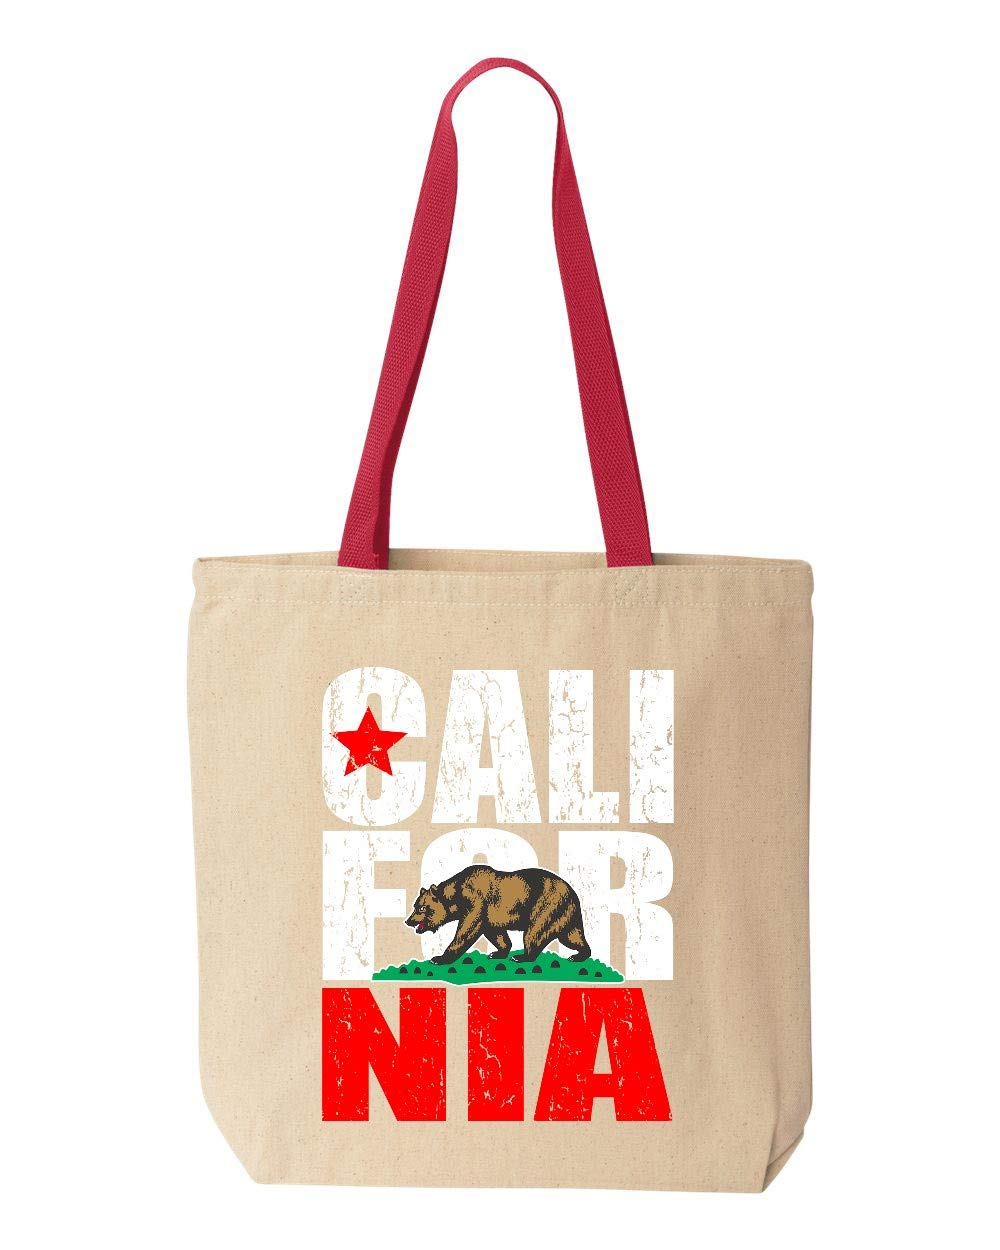 【予約】 (1, Natural - Black) Bag - Shop4Ever California Republic 300ml Vintage Pack Cotton Canvas Tote State Flag Reusable Shopping Bag 300ml Natural - Black 1 Pack Coloured Handle B06XNVGCXB ナチュラル-レッド ナチュラル-レッド|1, ゴルフマルシェ:b58c1d51 --- arianechie.dominiotemporario.com